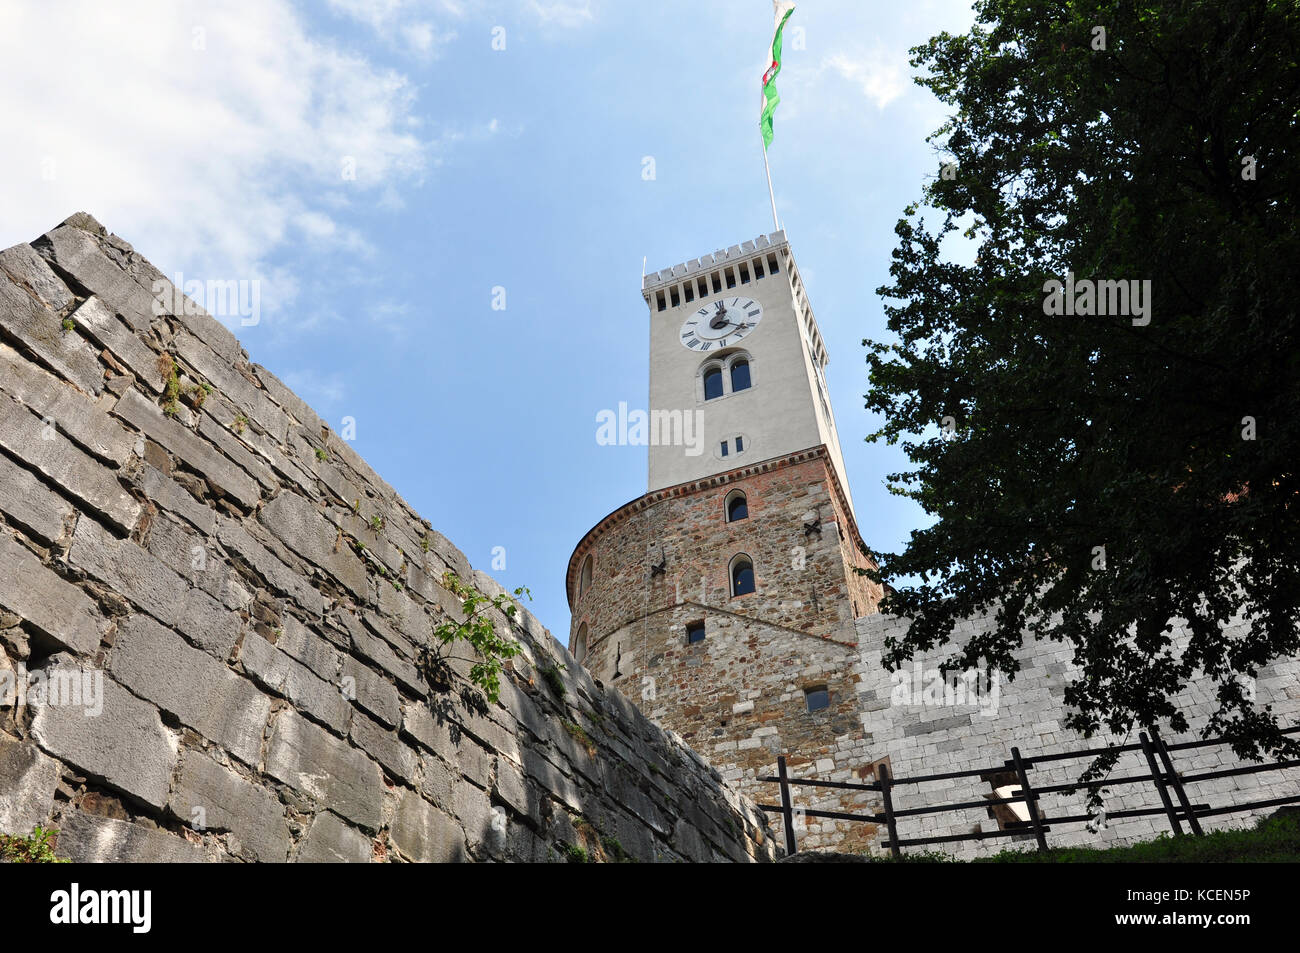 ljubljana castle tower from below - Stock Image